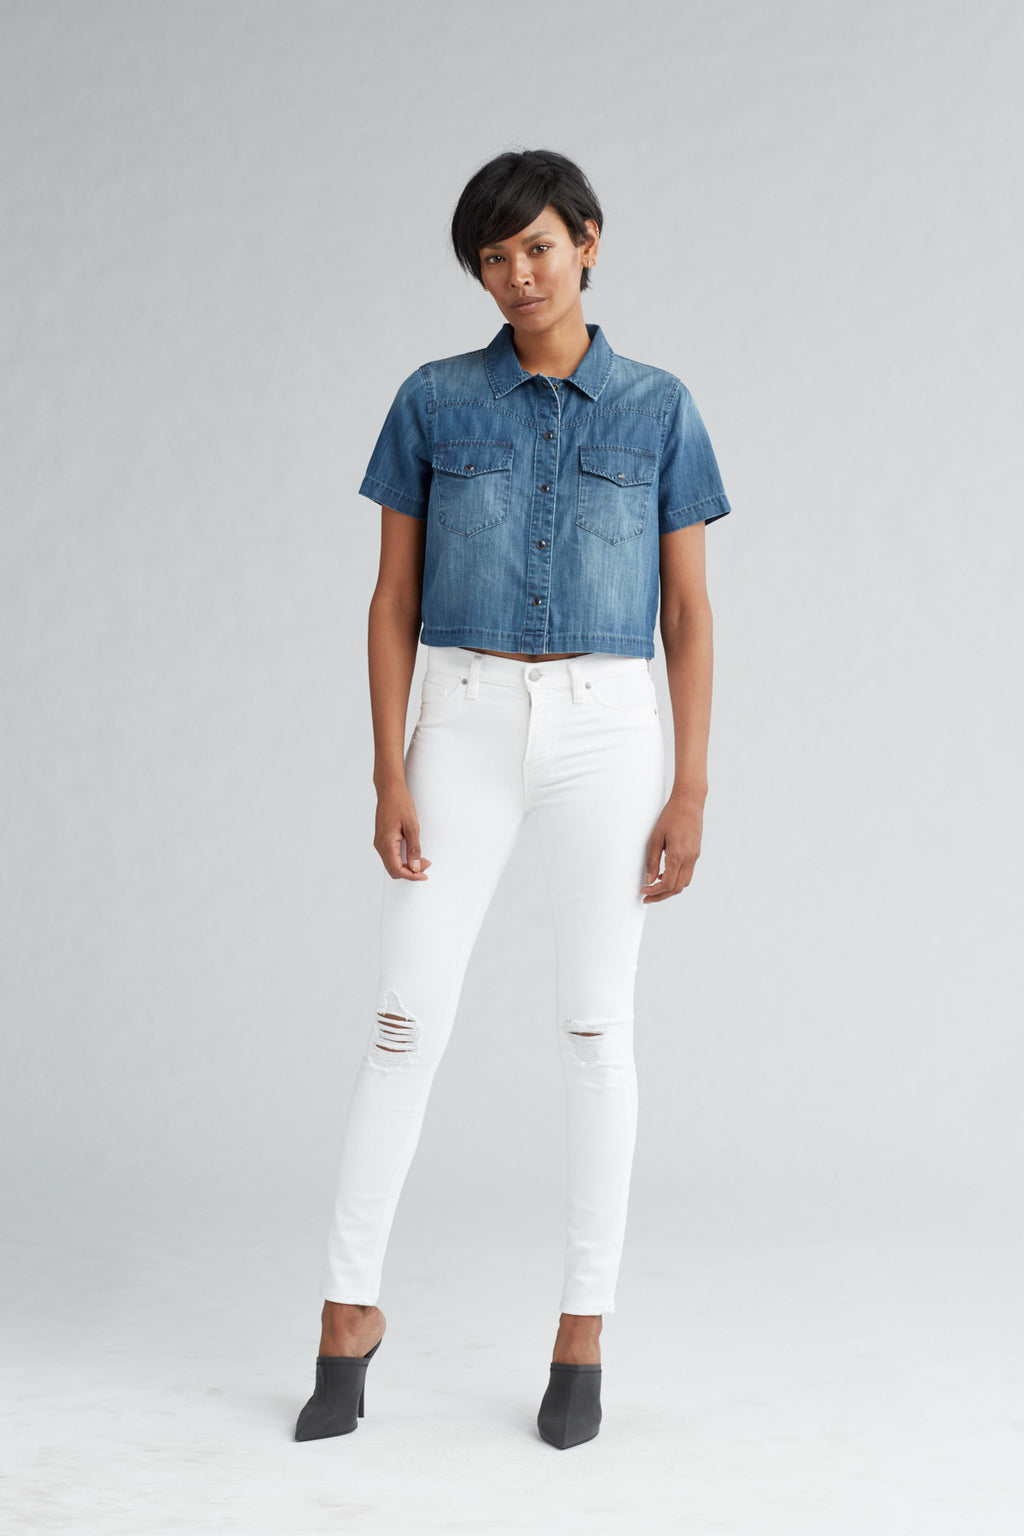 WESTERN SHIRT - BREEZE - Image 1